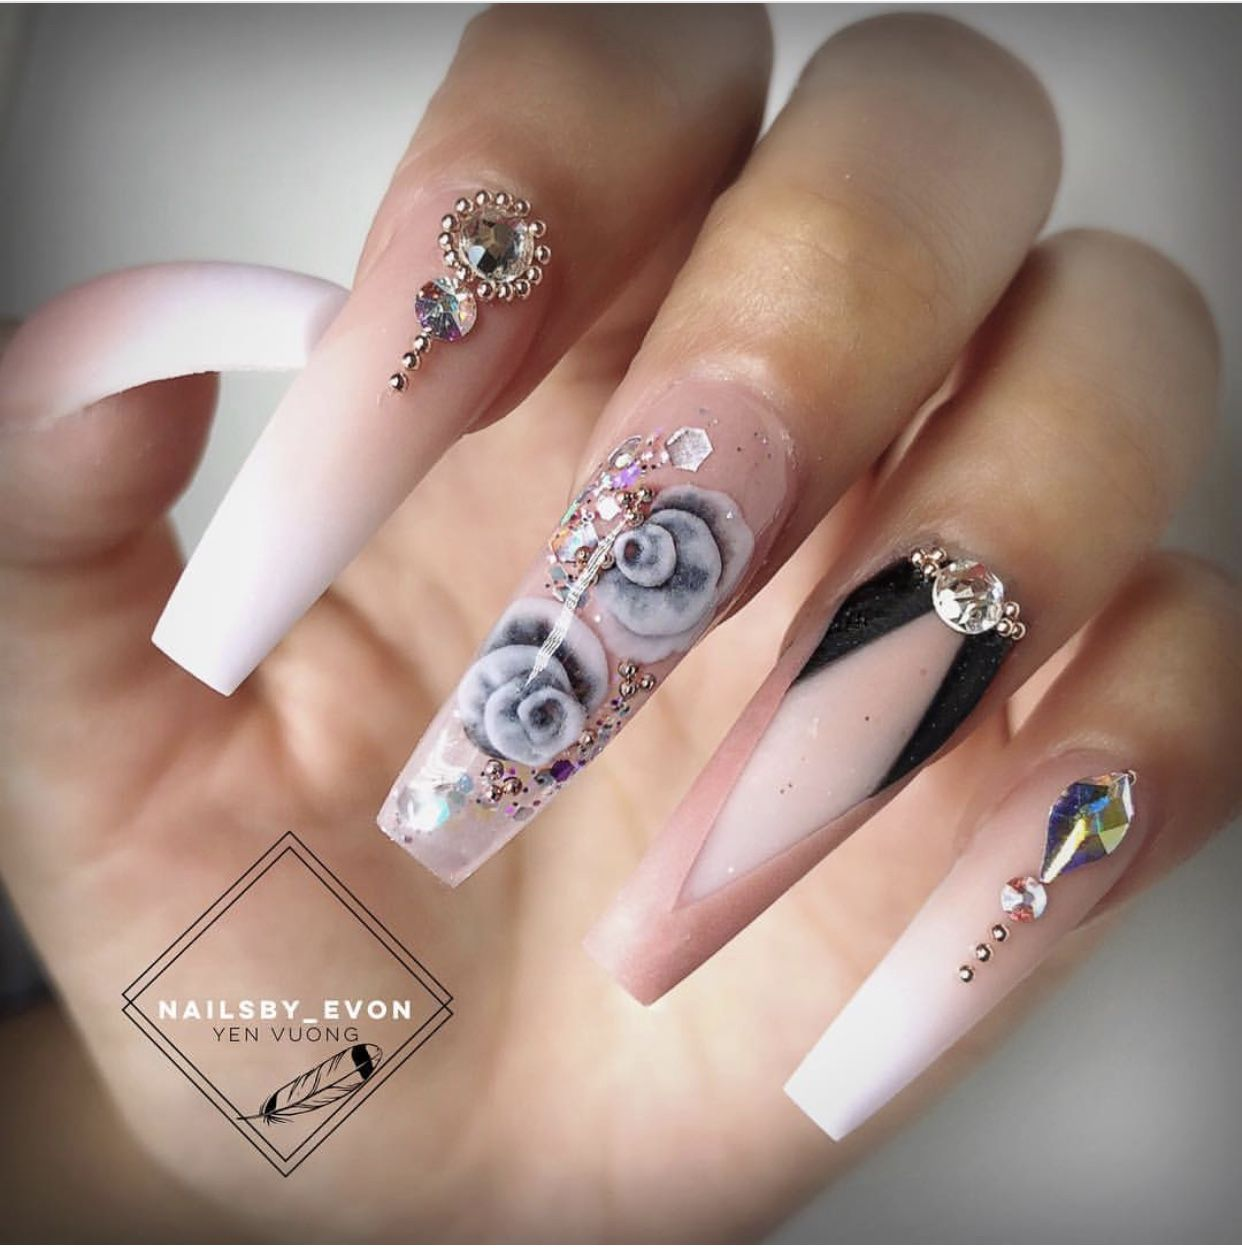 Pin by Luna Saez on Nail Art | Pinterest | Nails 2015 and Coffin nails